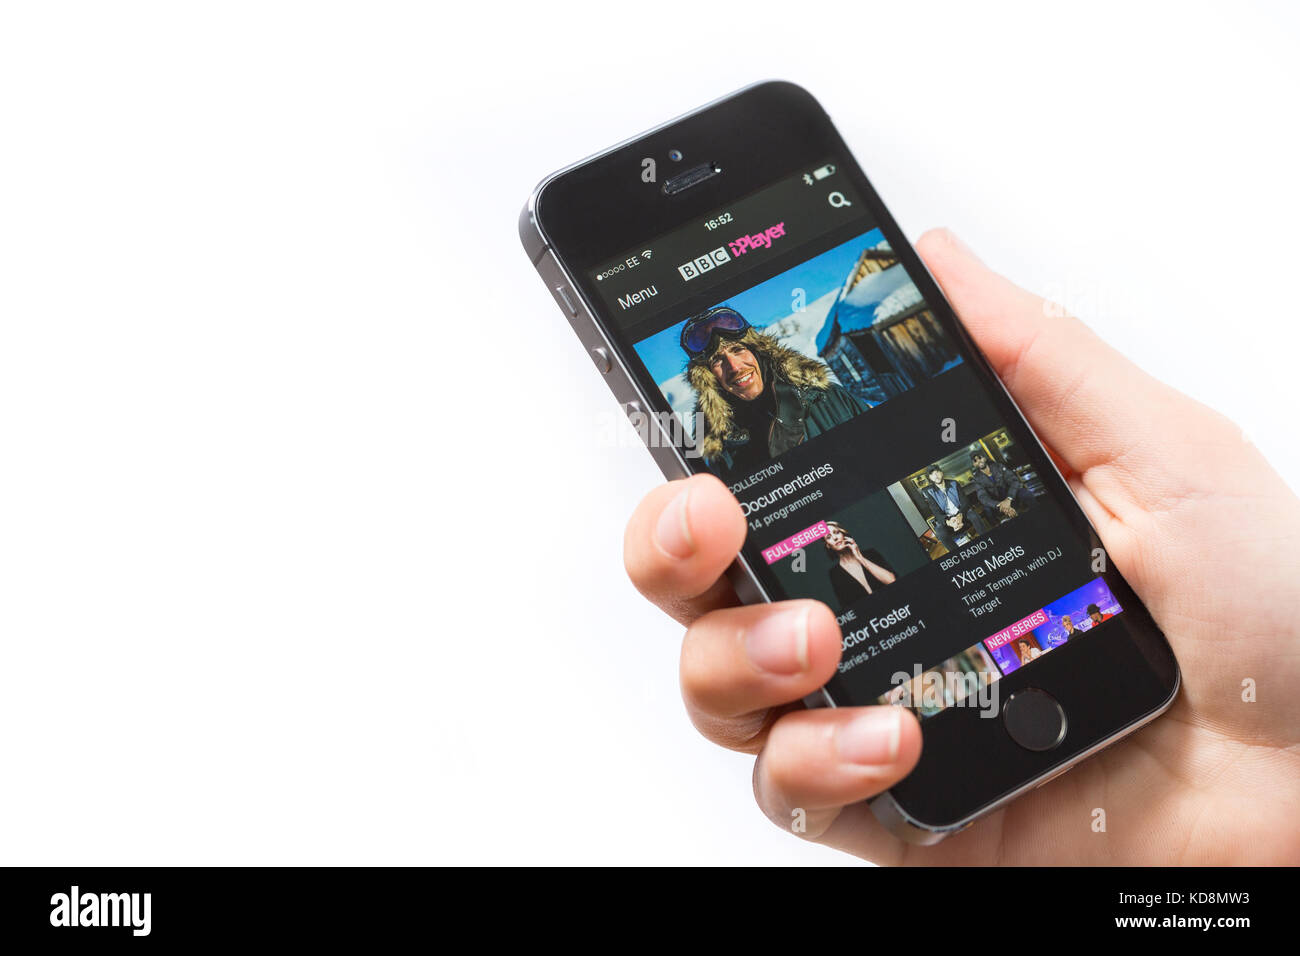 BBC iPlayer app on a mobile phone - Stock Image